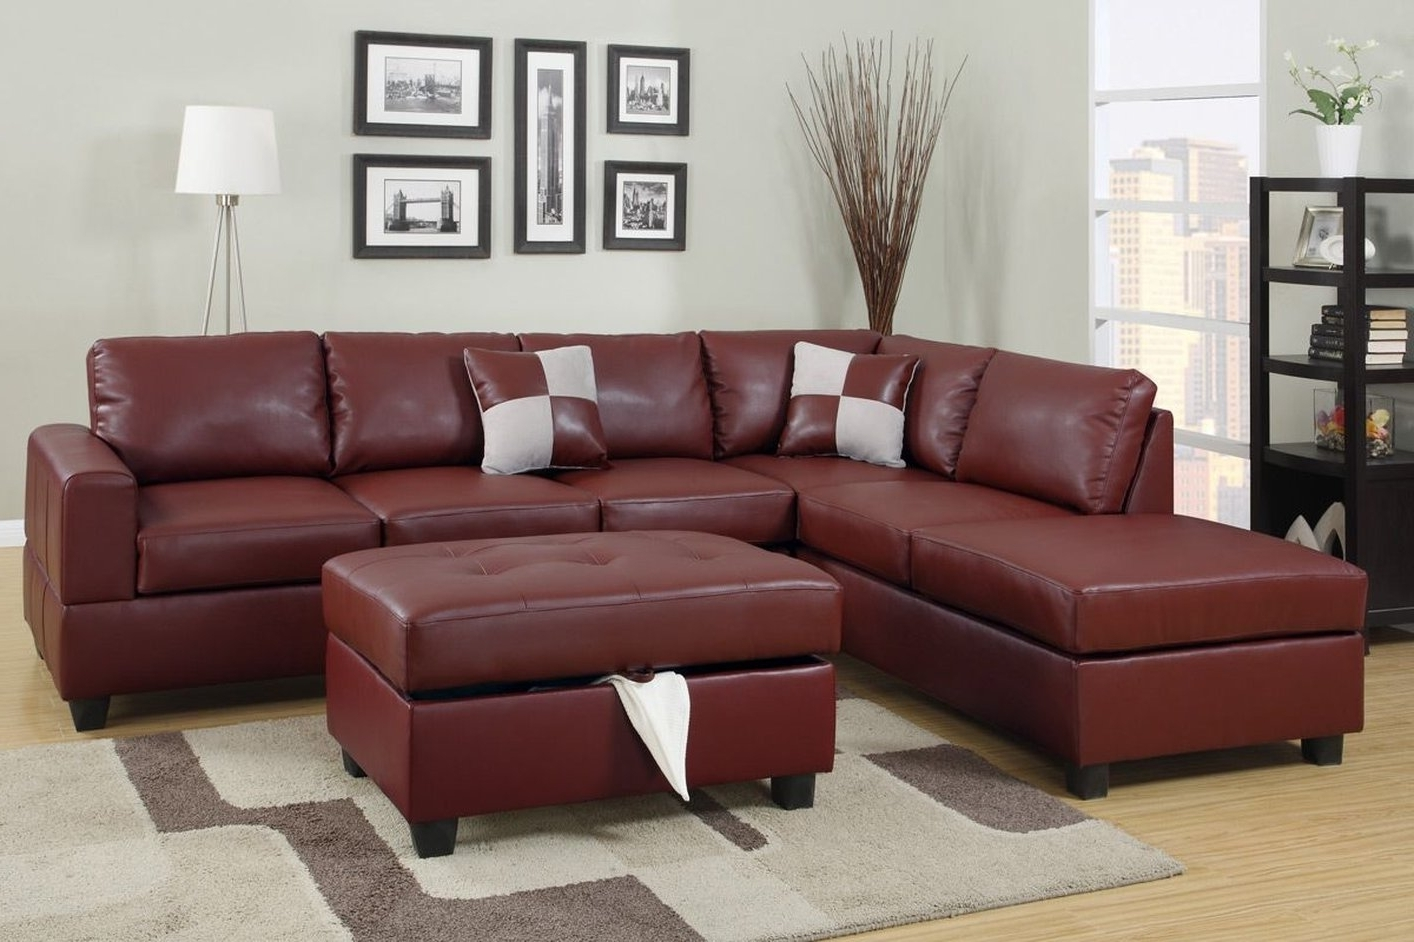 Red Sectional Sofas With Ottoman Intended For Most Recent April Red Leather Sectional Sofa And Ottoman – Steal A Sofa (View 15 of 20)